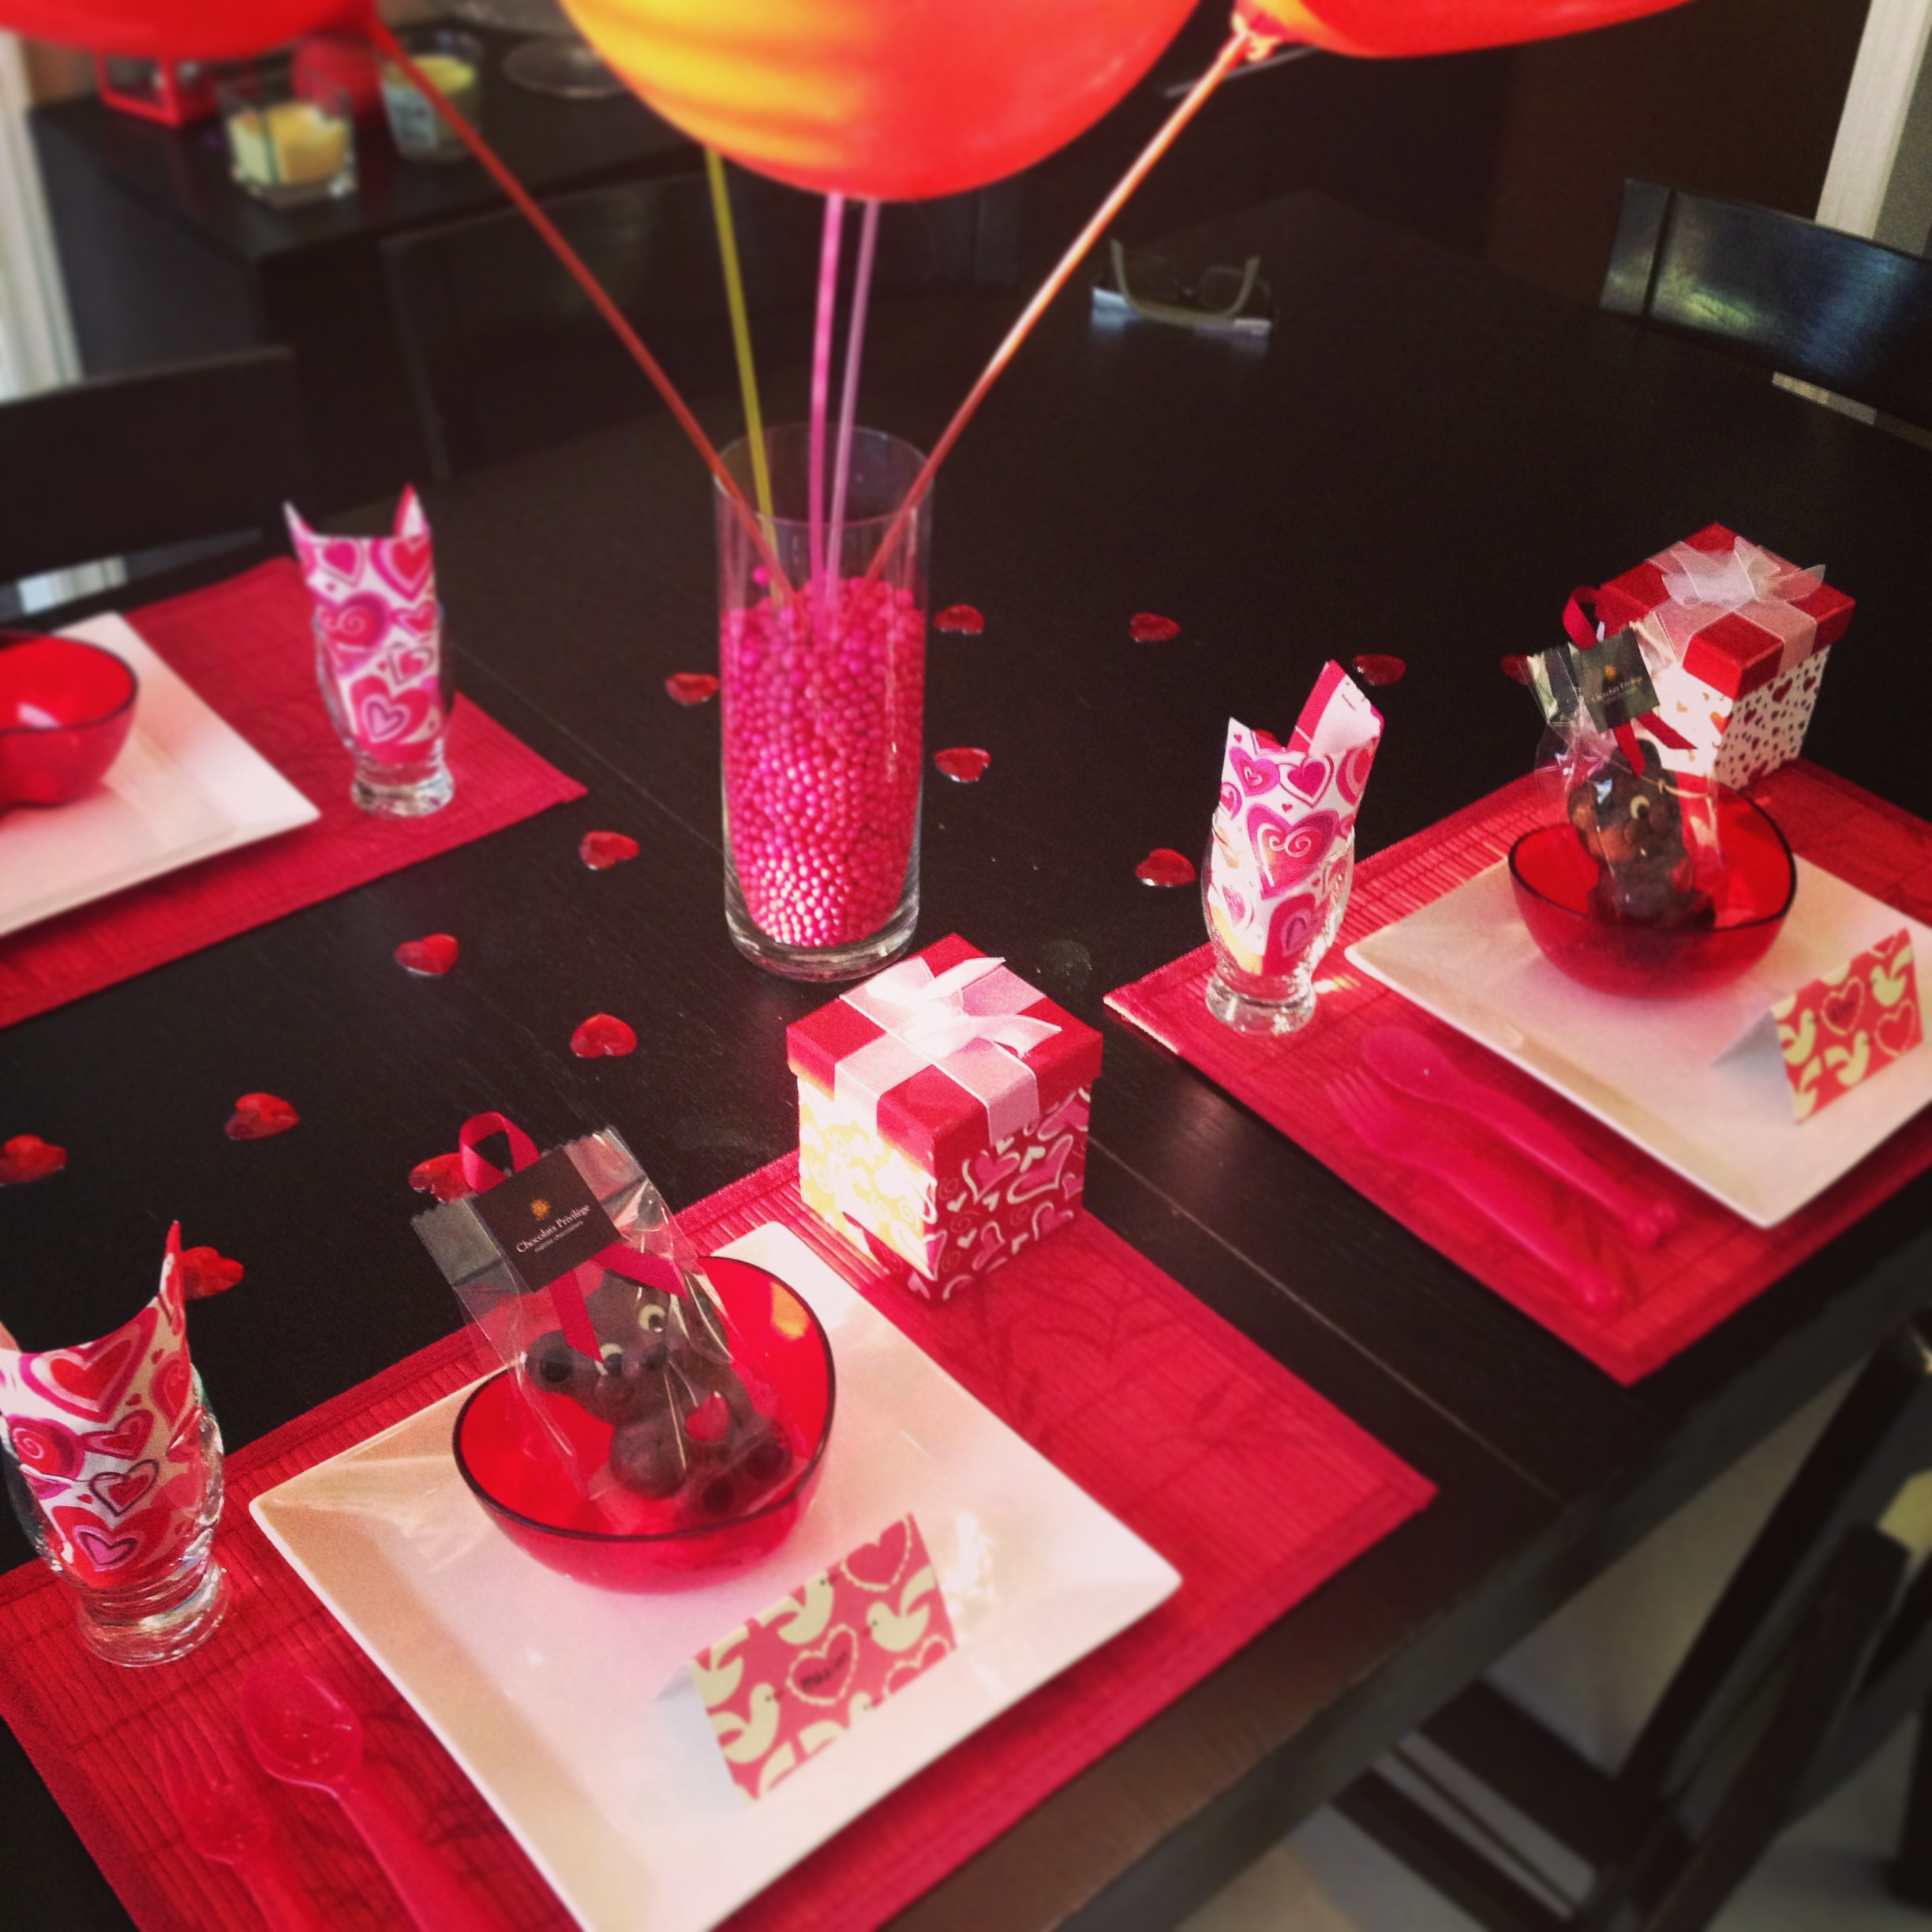 Quoi manger la st valentin harnois la carte for Decoration pour